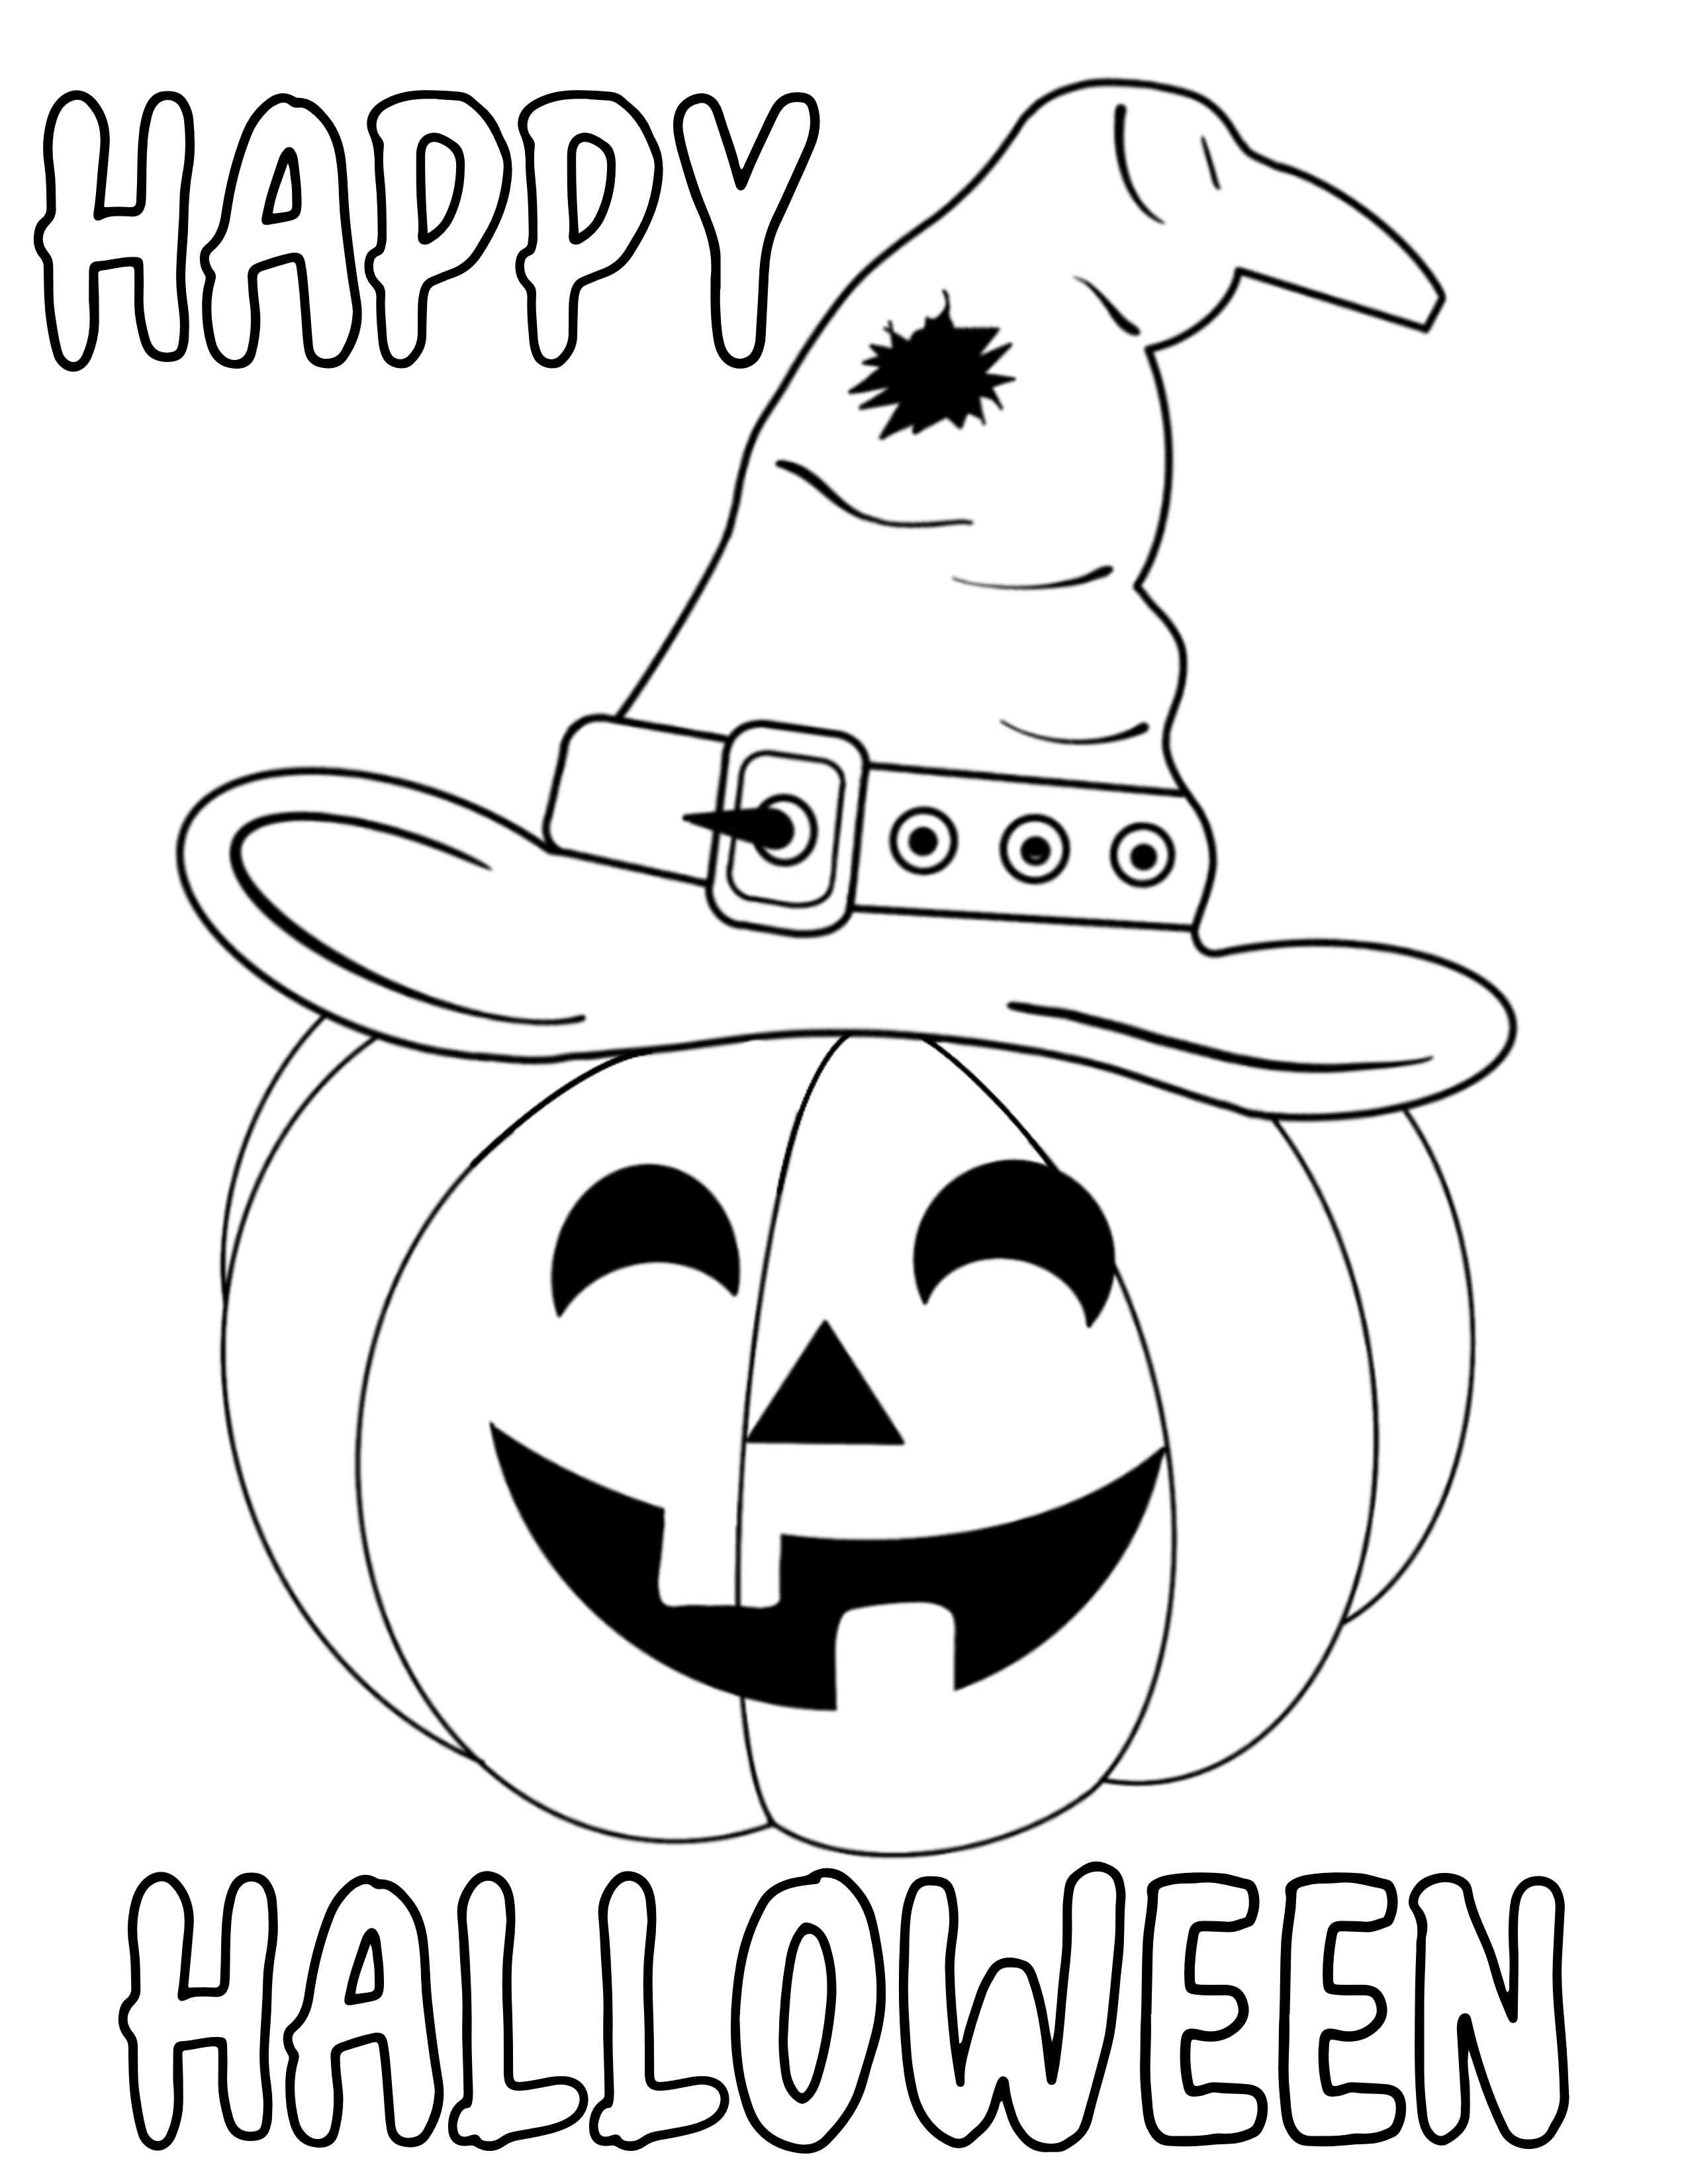 Halloween Colouring Sheet with a pumpkin in a witch's hat